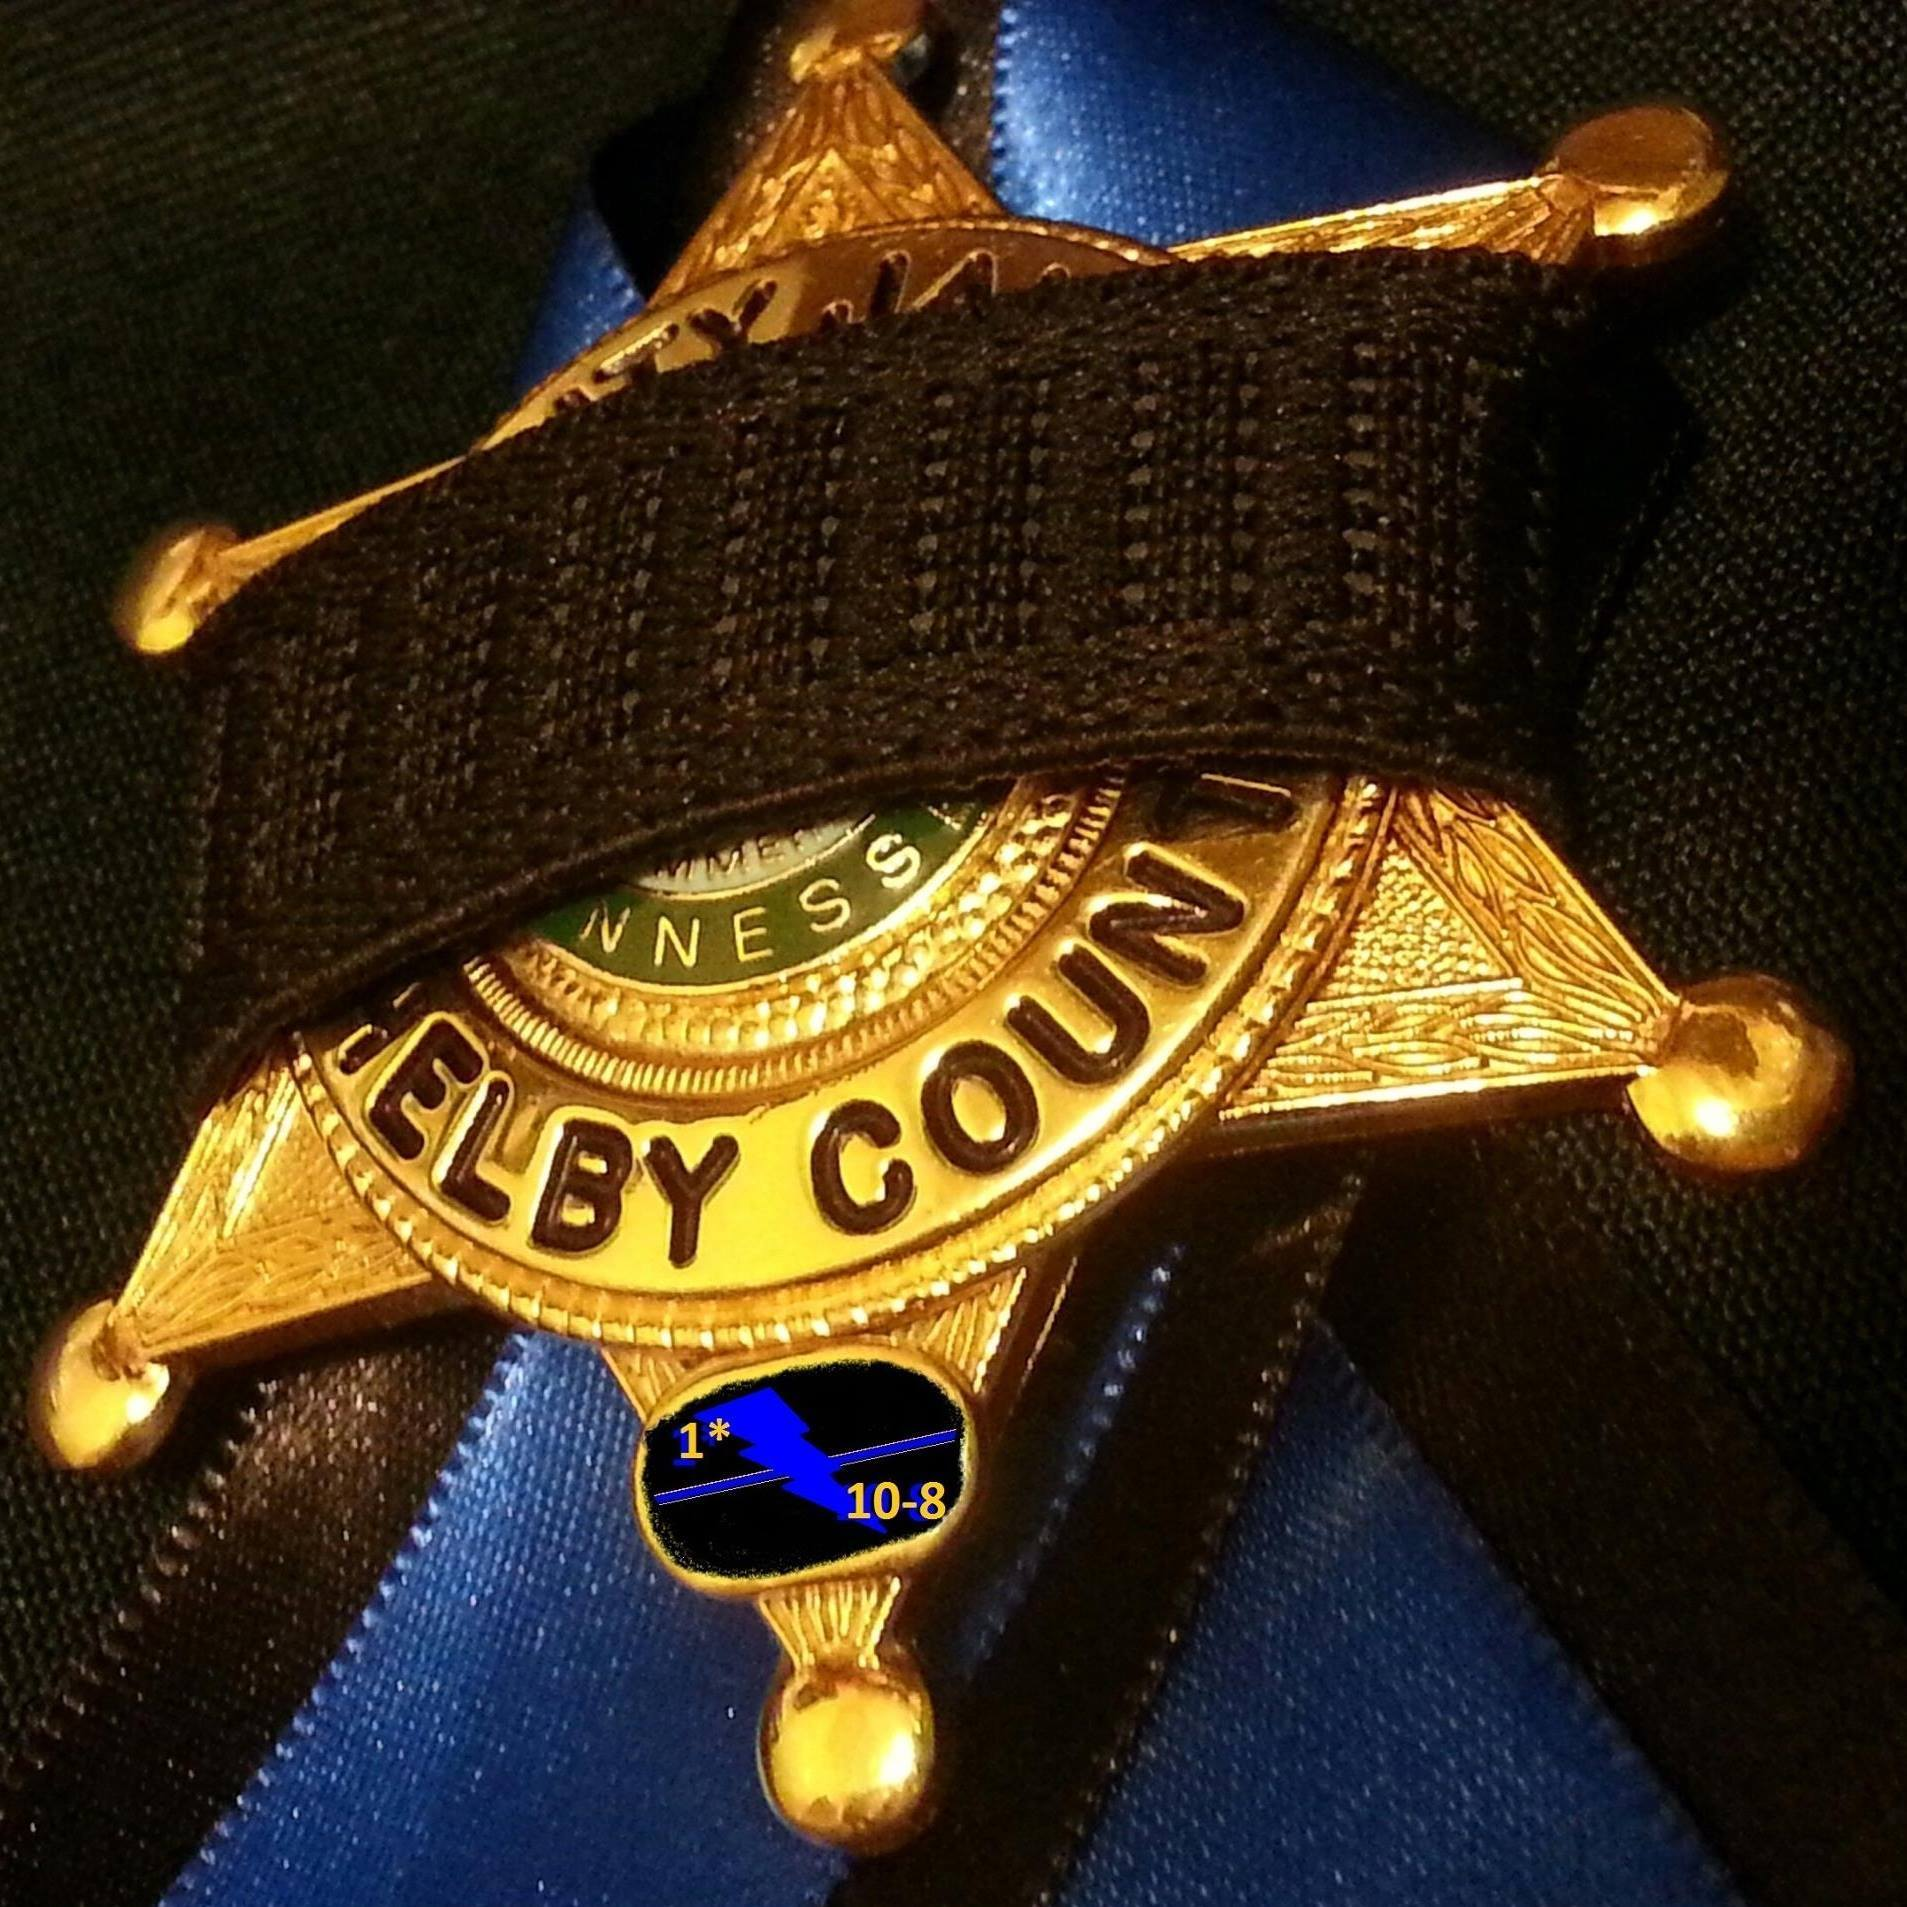 Shelby County Sherriff's Department badge. (Photo: SCSD Facebook)